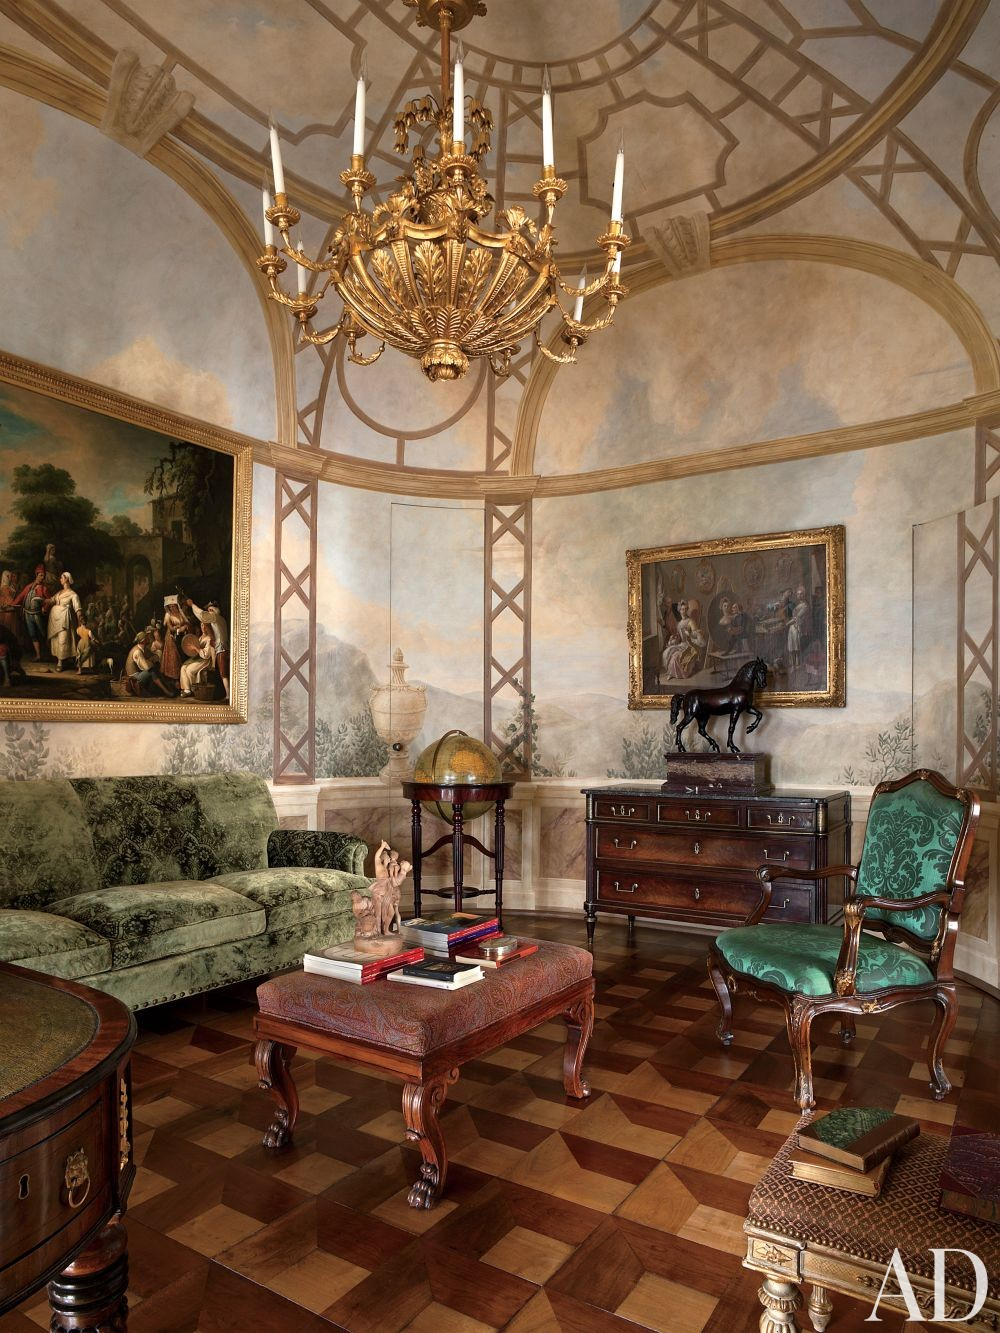 Traditional Living Room by Studio Peregalli in Naples, Italy